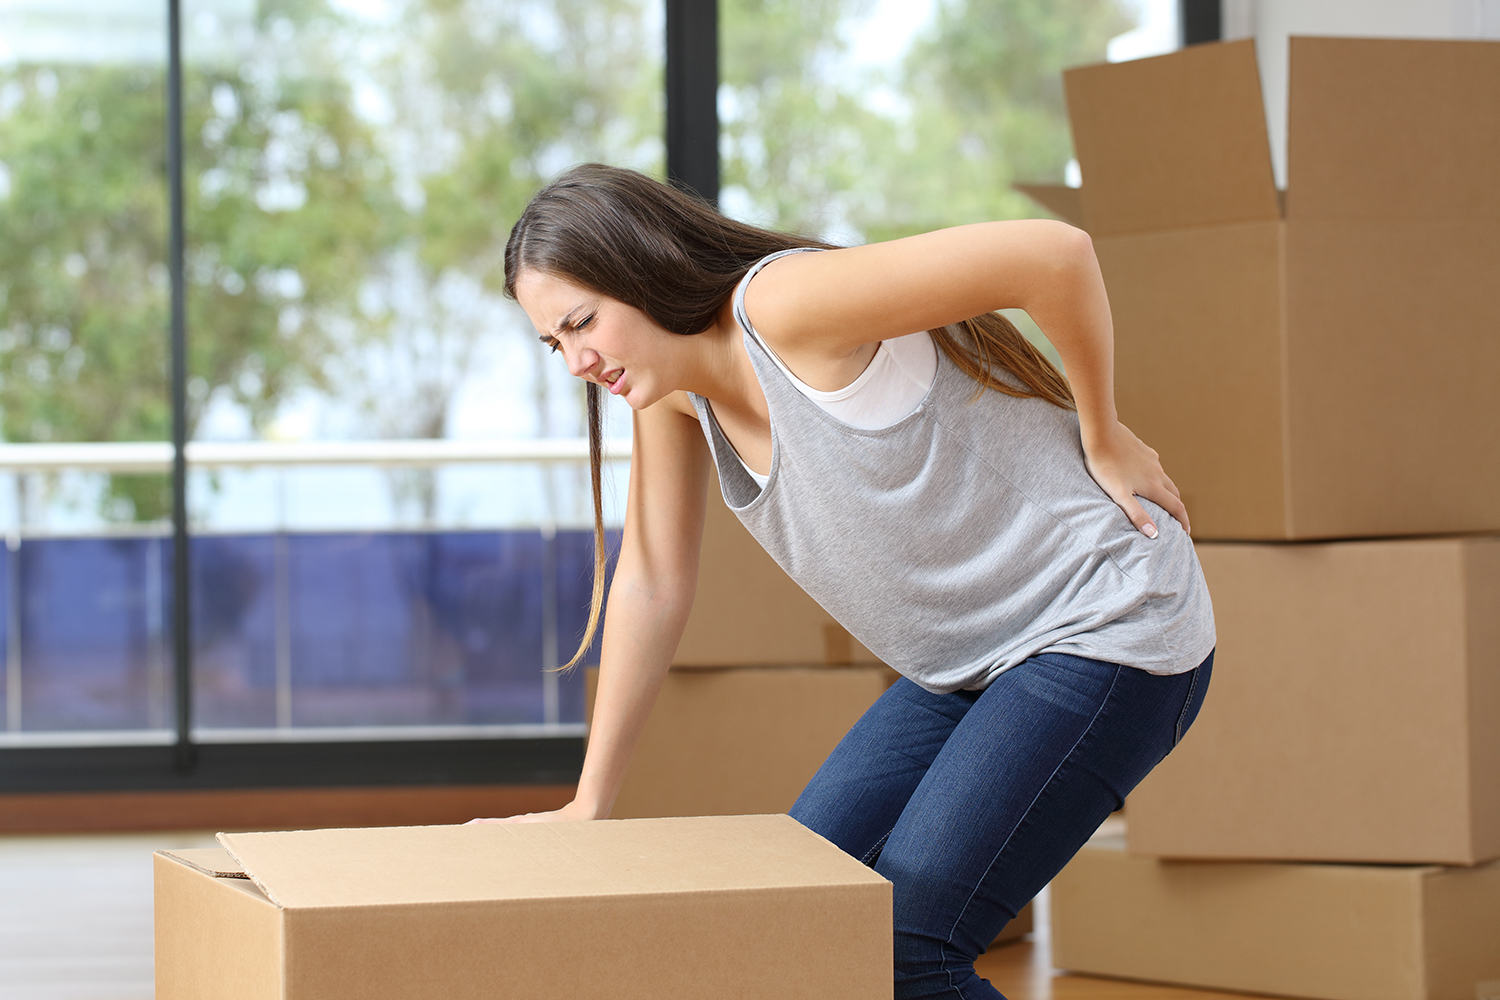 Lift Boxes Correctly When Moving to Avoid Injuries